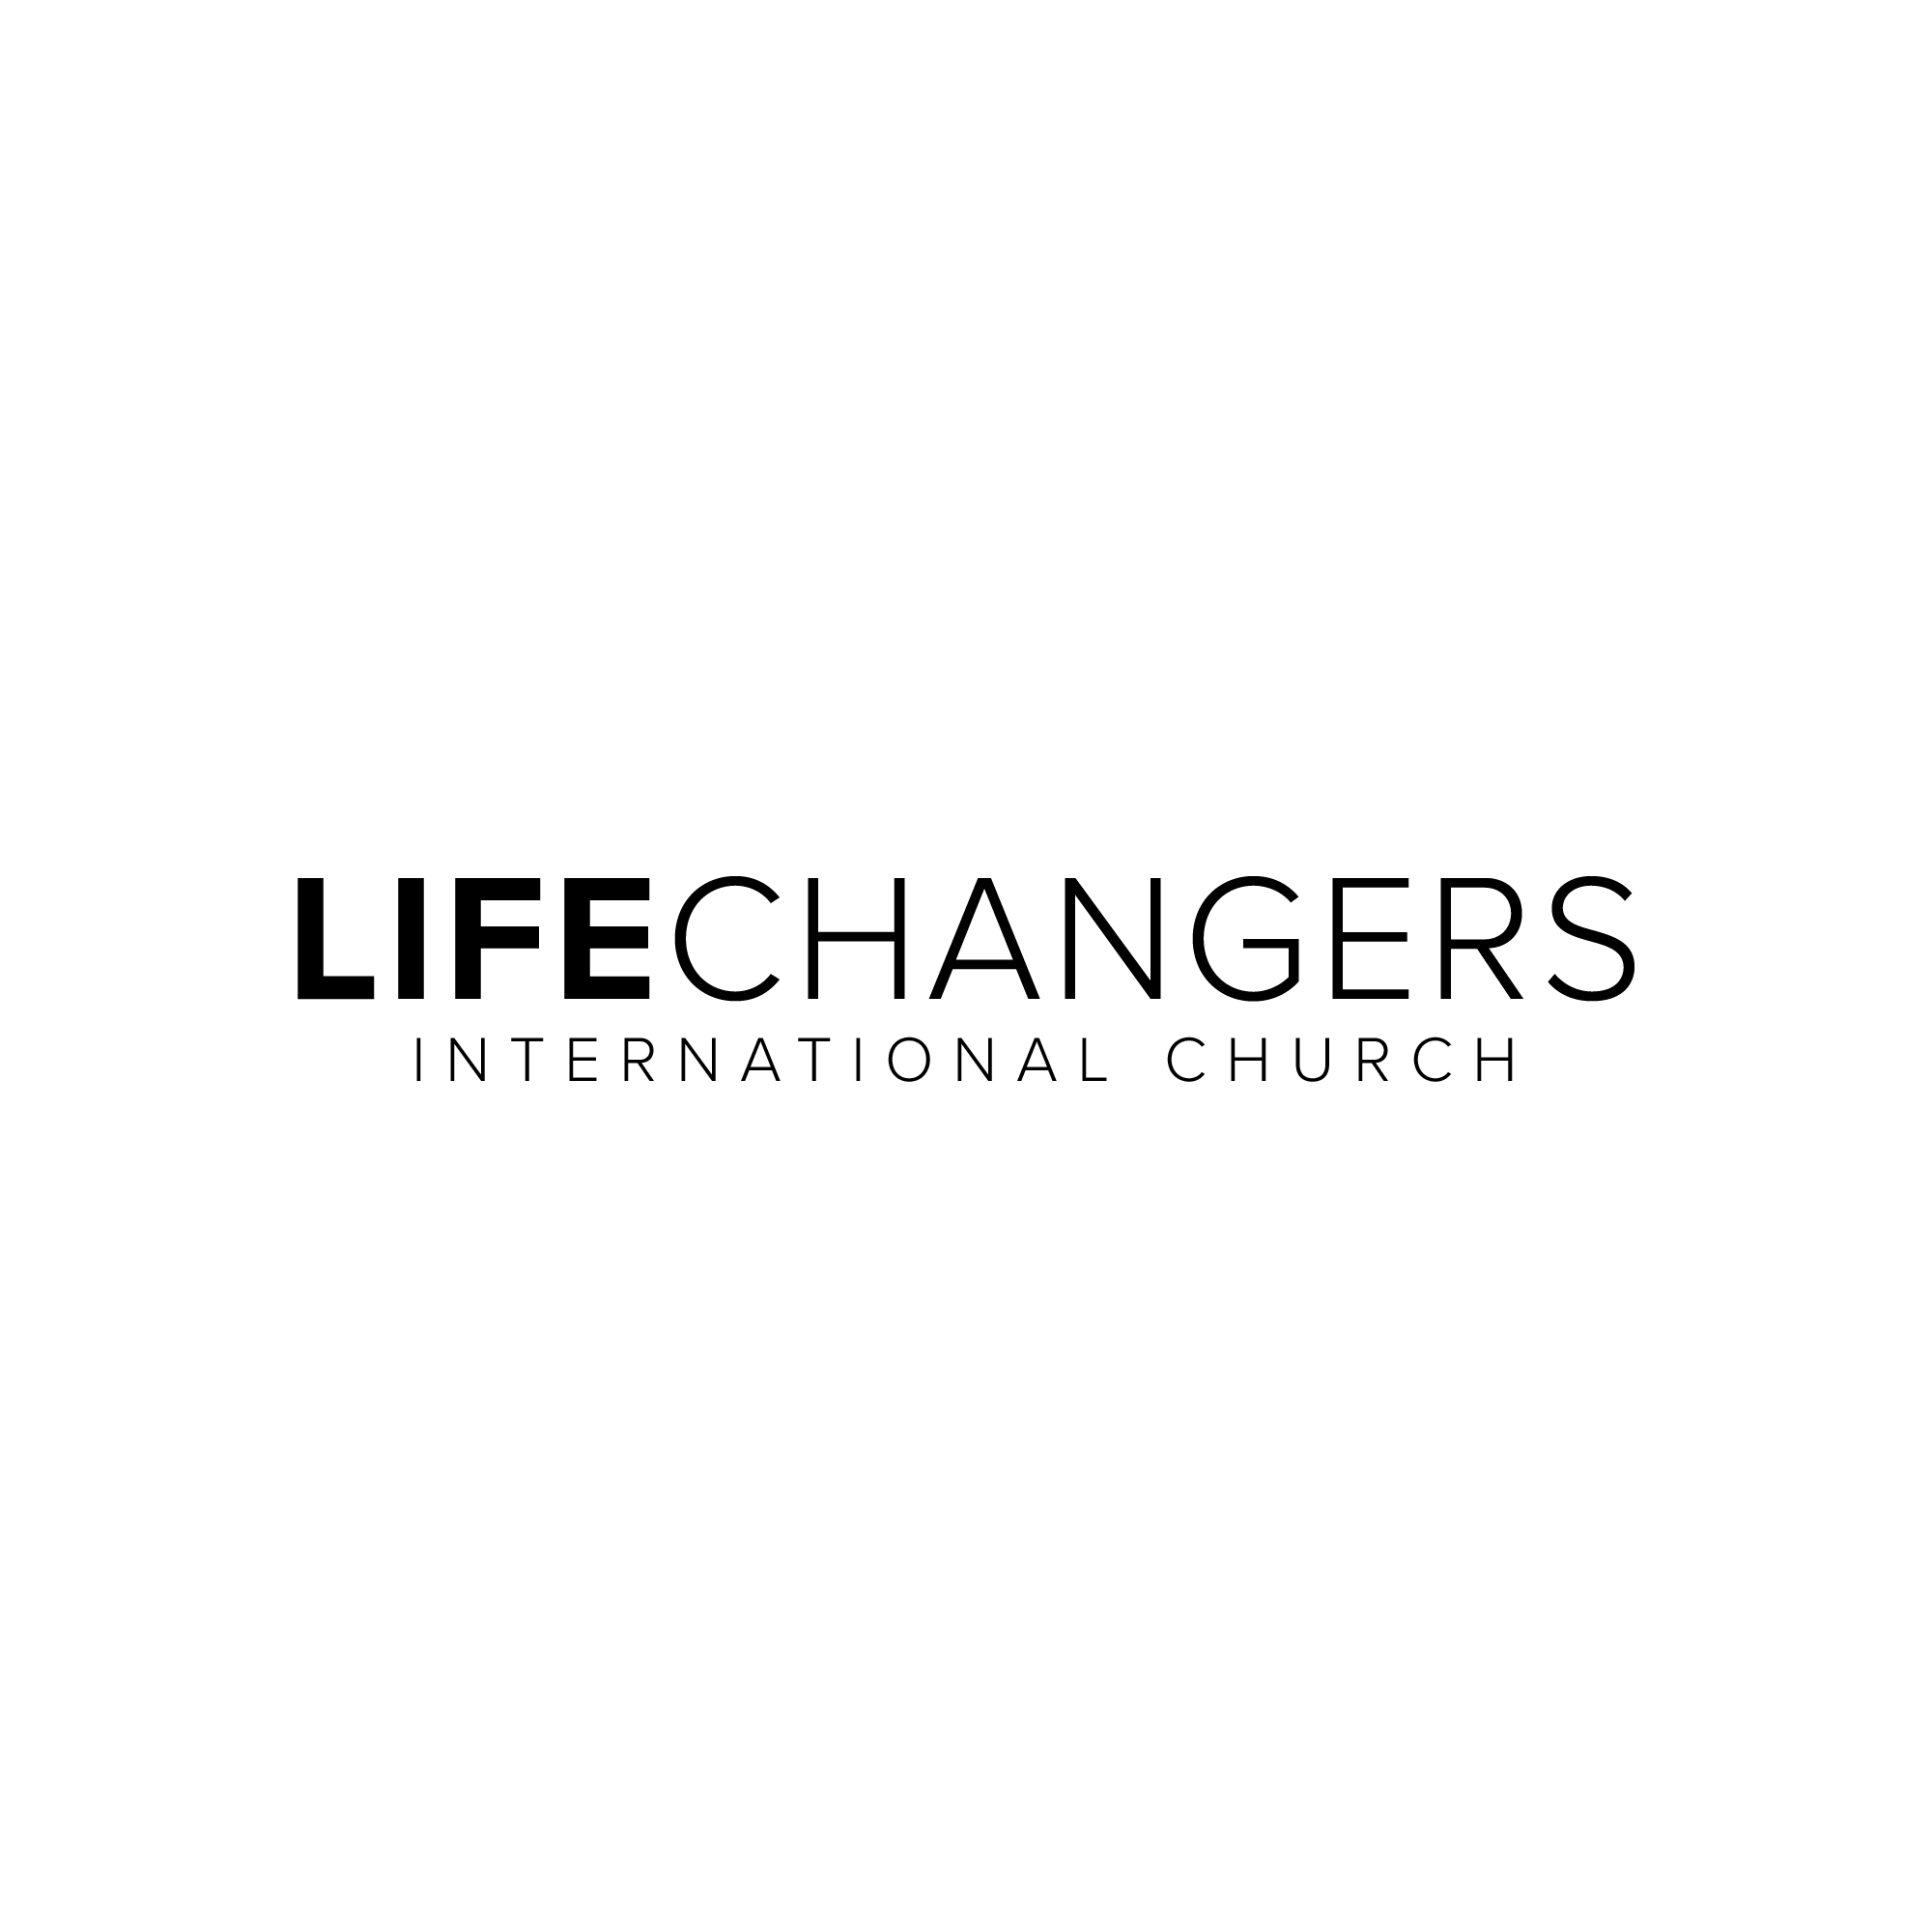 Life Changers International Church - Hoffman Estates, IL 60192 - (847)645-9100 | ShowMeLocal.com